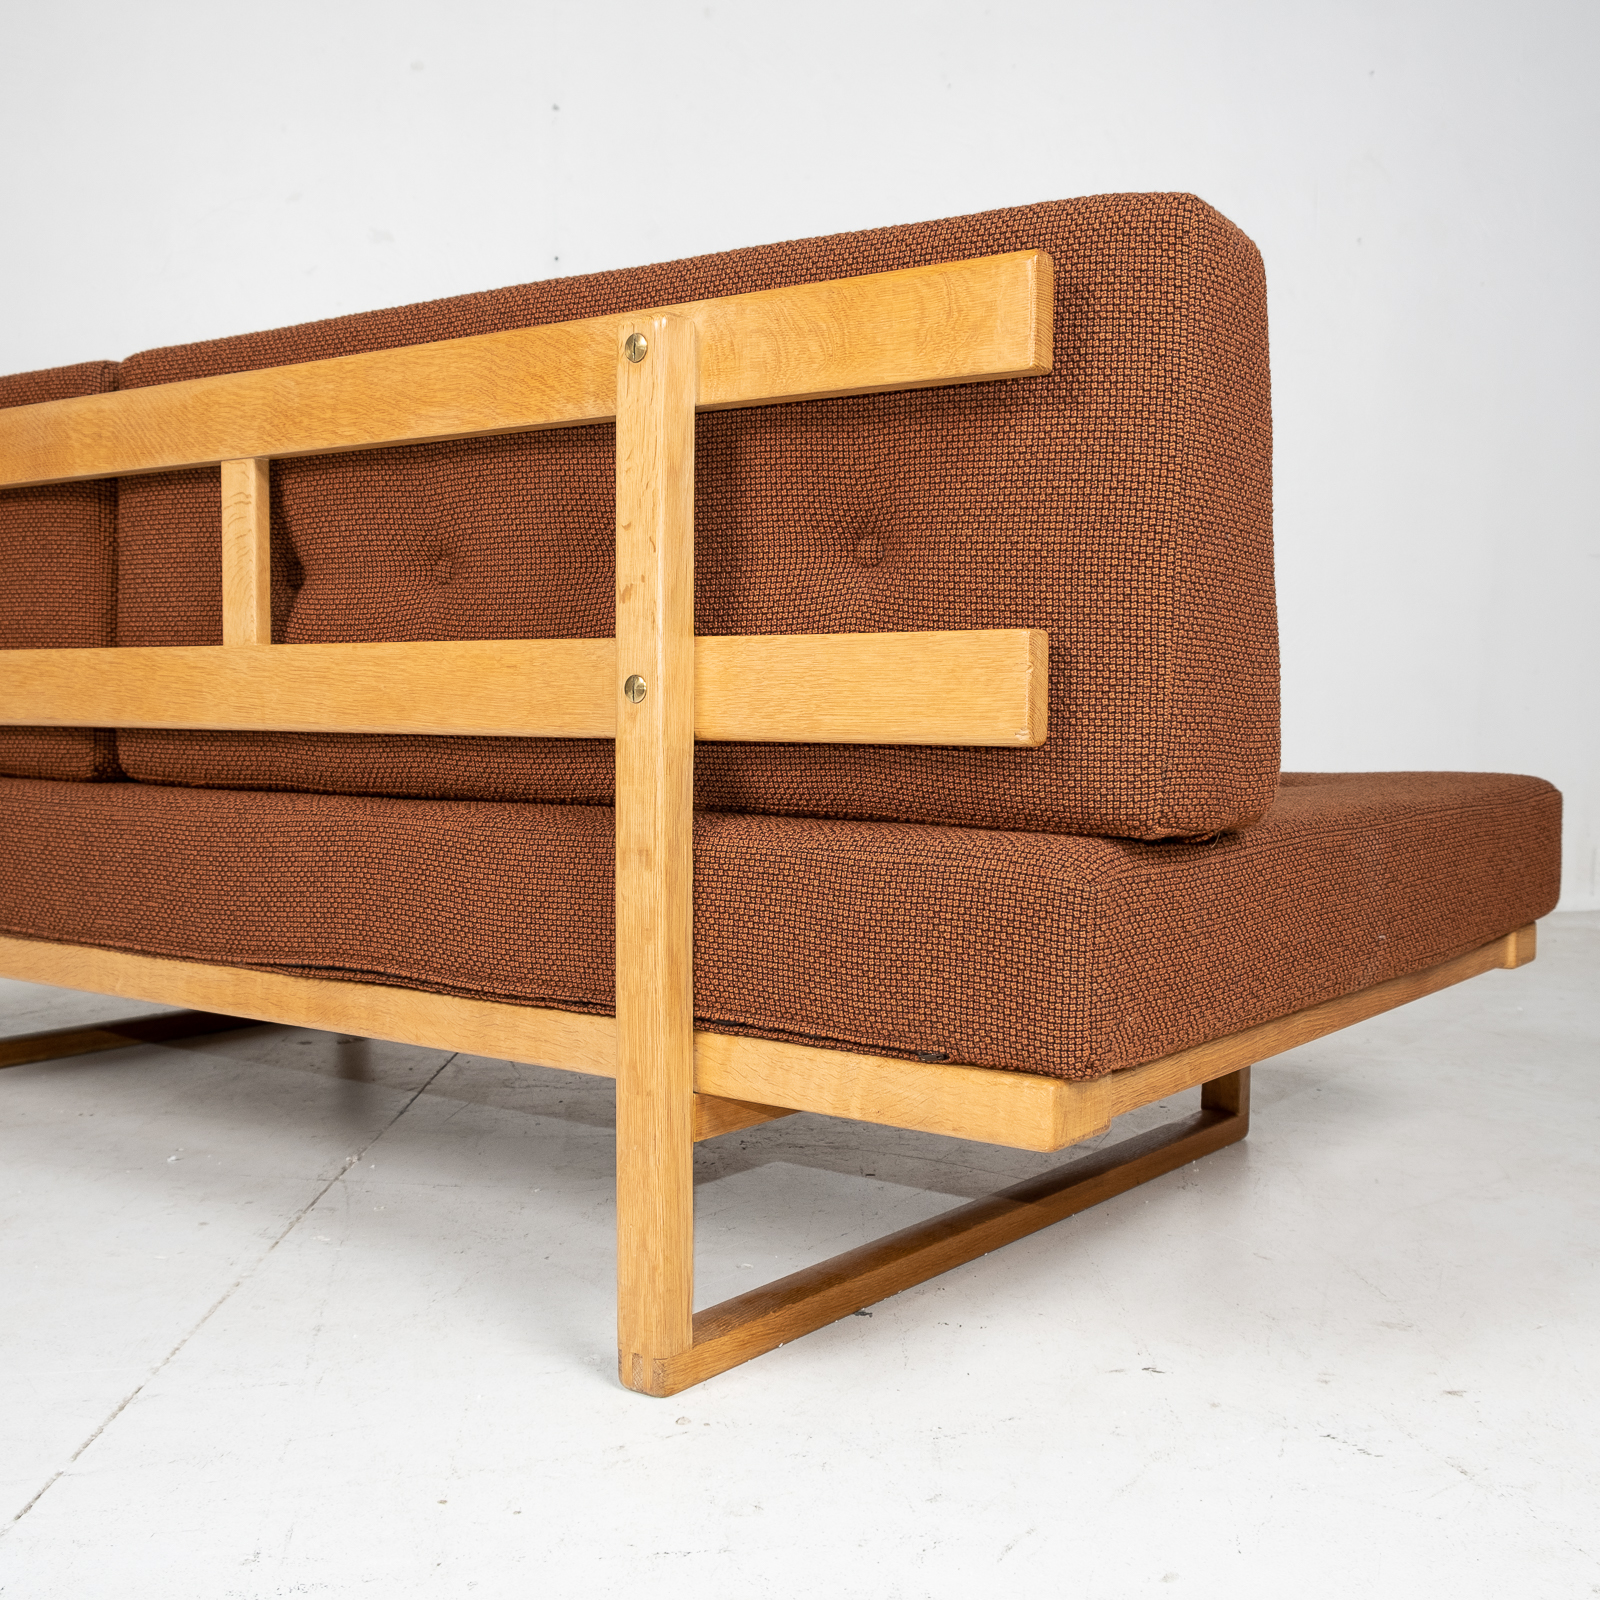 Model 4312 Daybed By Borge Mogensen For Fredericia Stolefabrik In Oak And New Kvadrat Wool Upholstery, Denmark, 1950s3